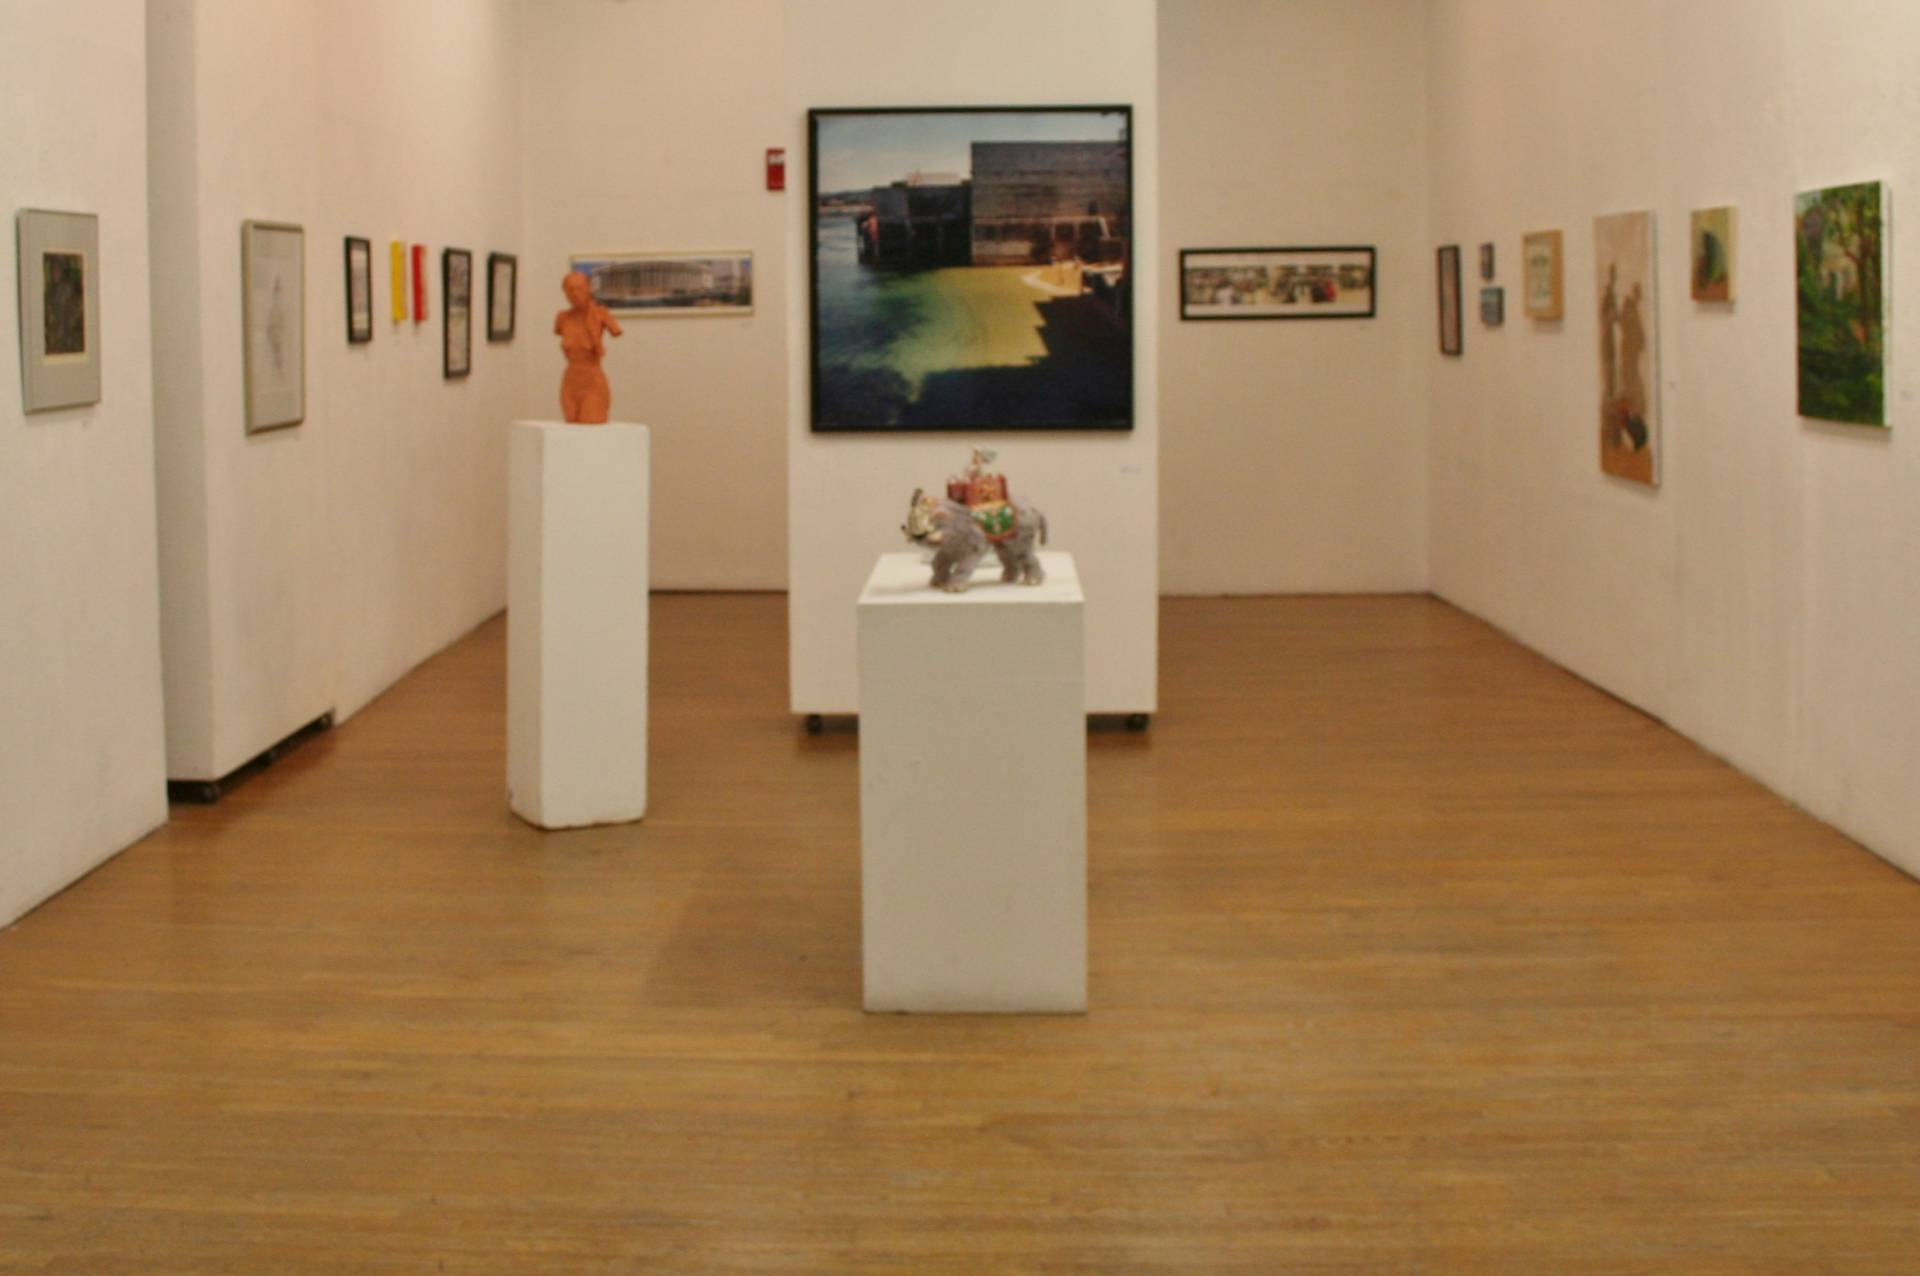 Gallery-Faculty show